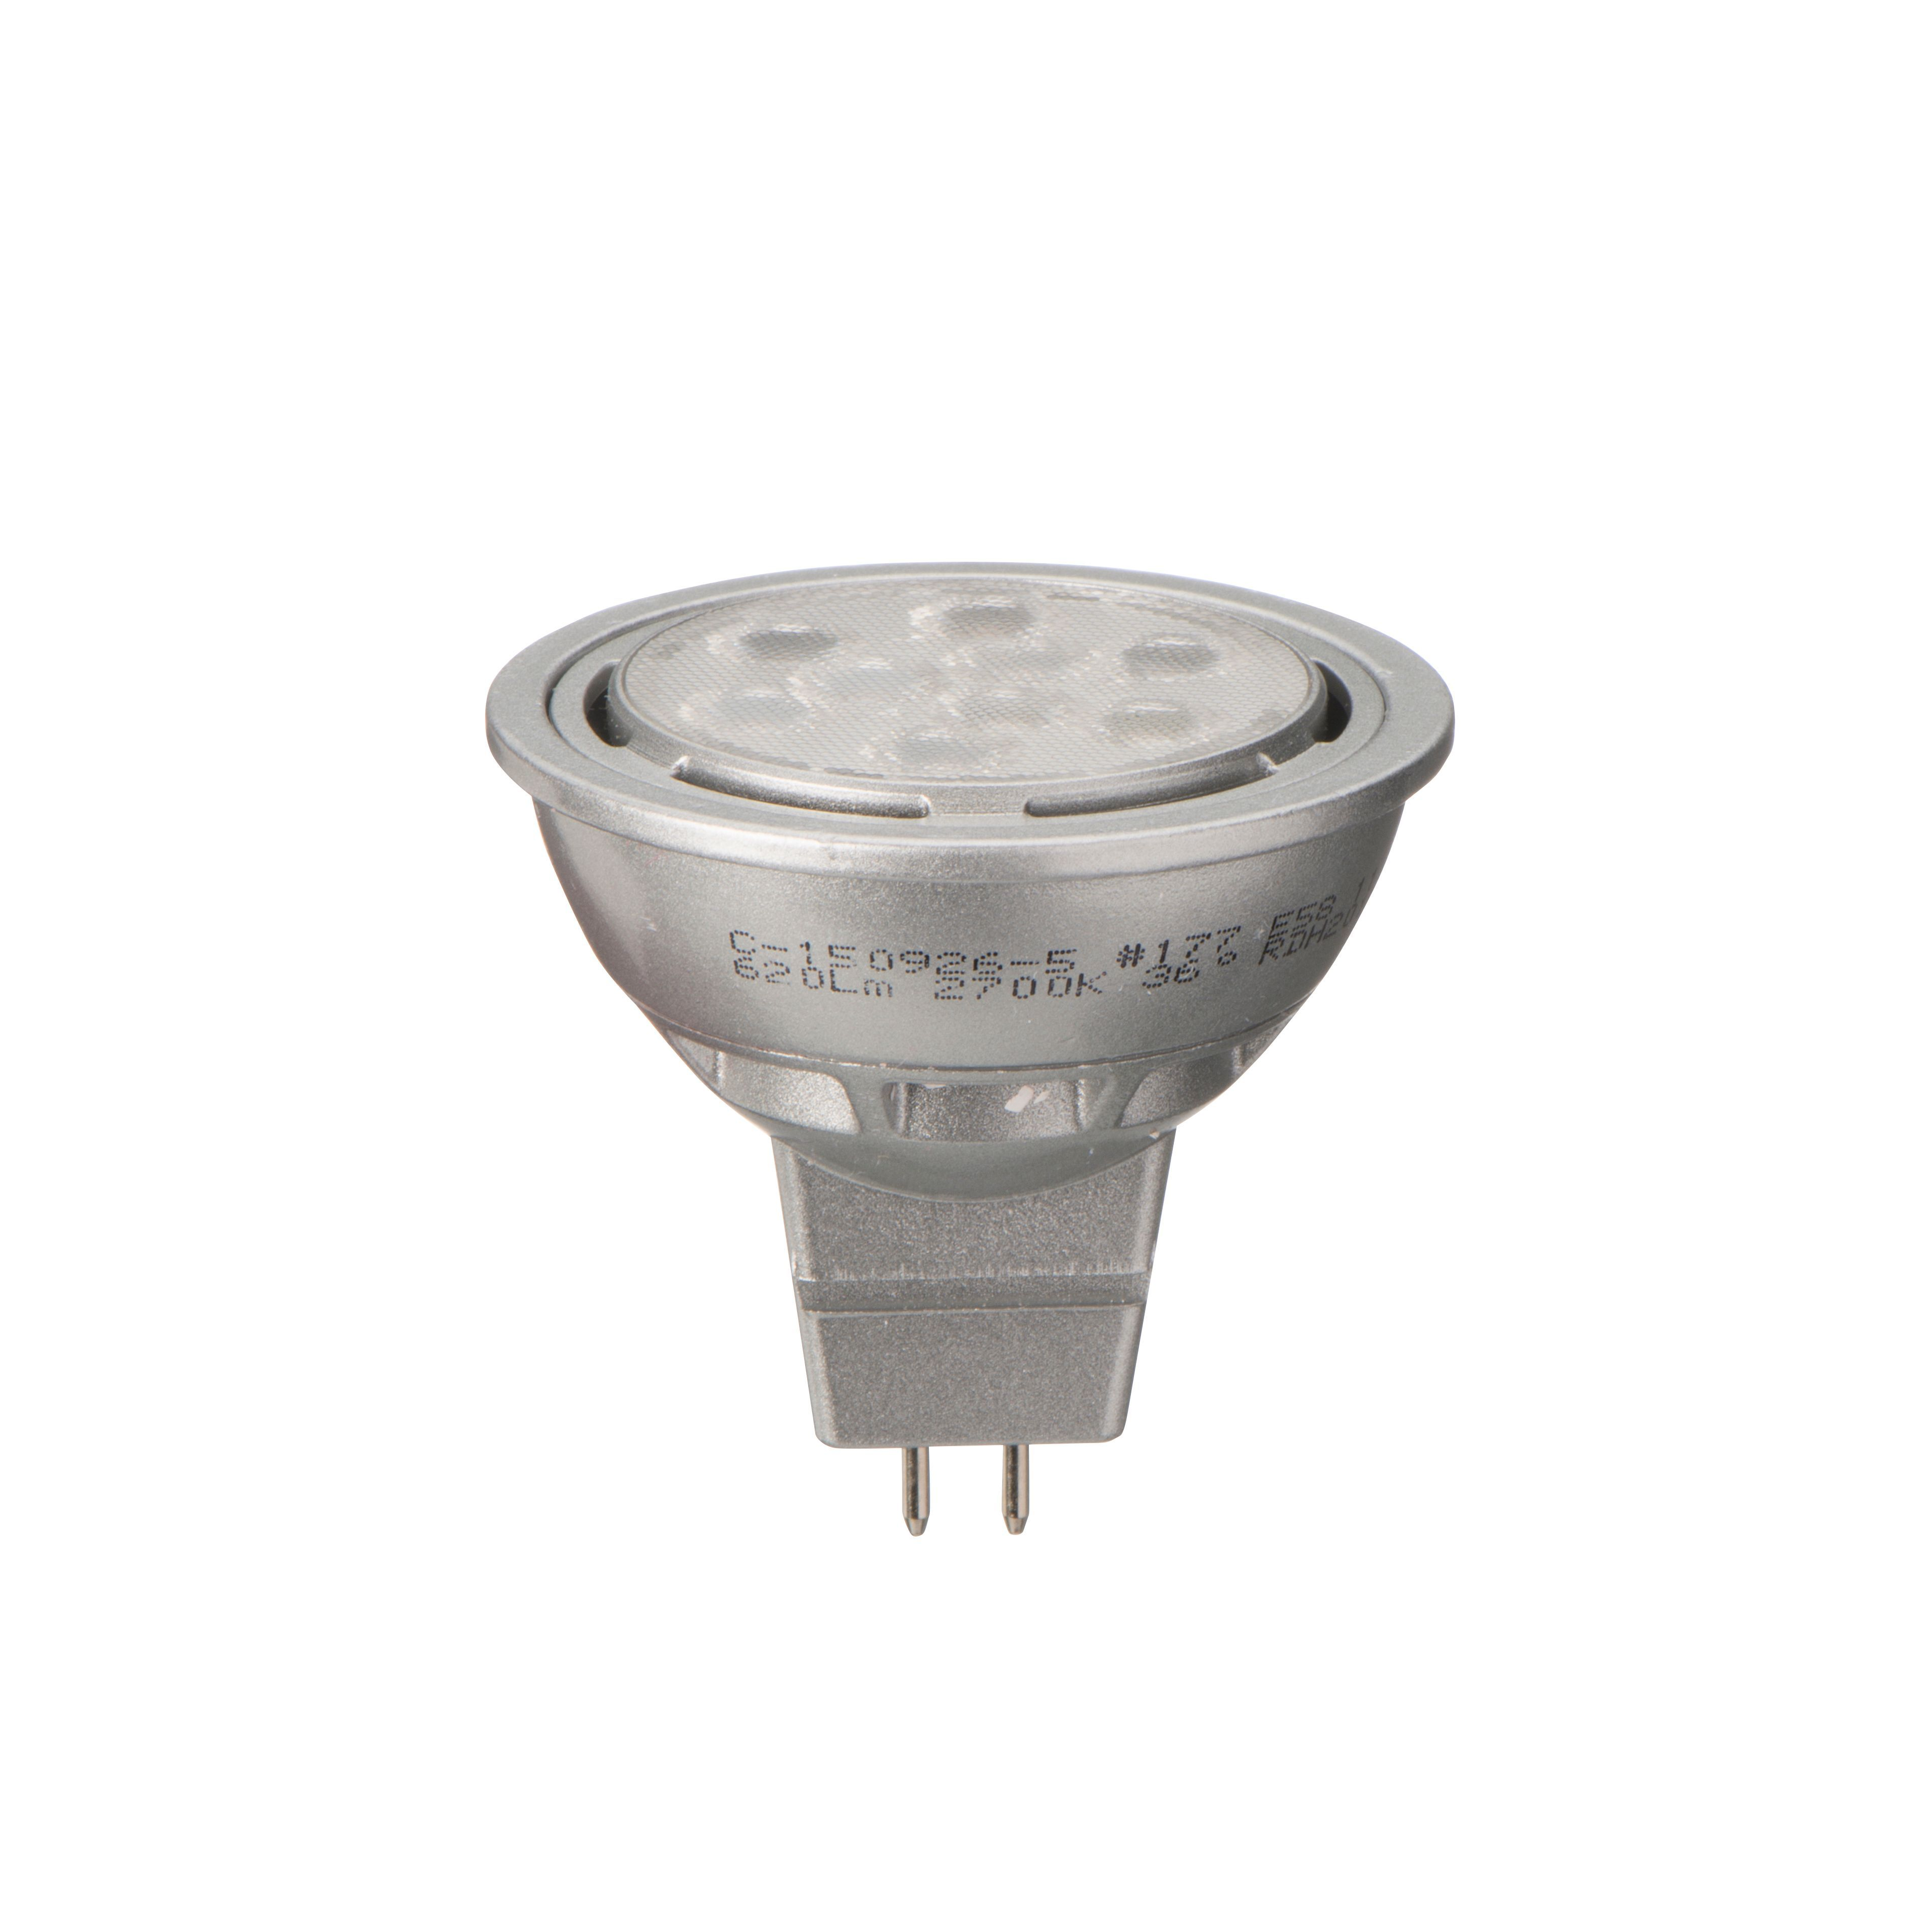 Diall Gu5.3 Mr16 621lm Led Dimmable Reflector Light Bulb